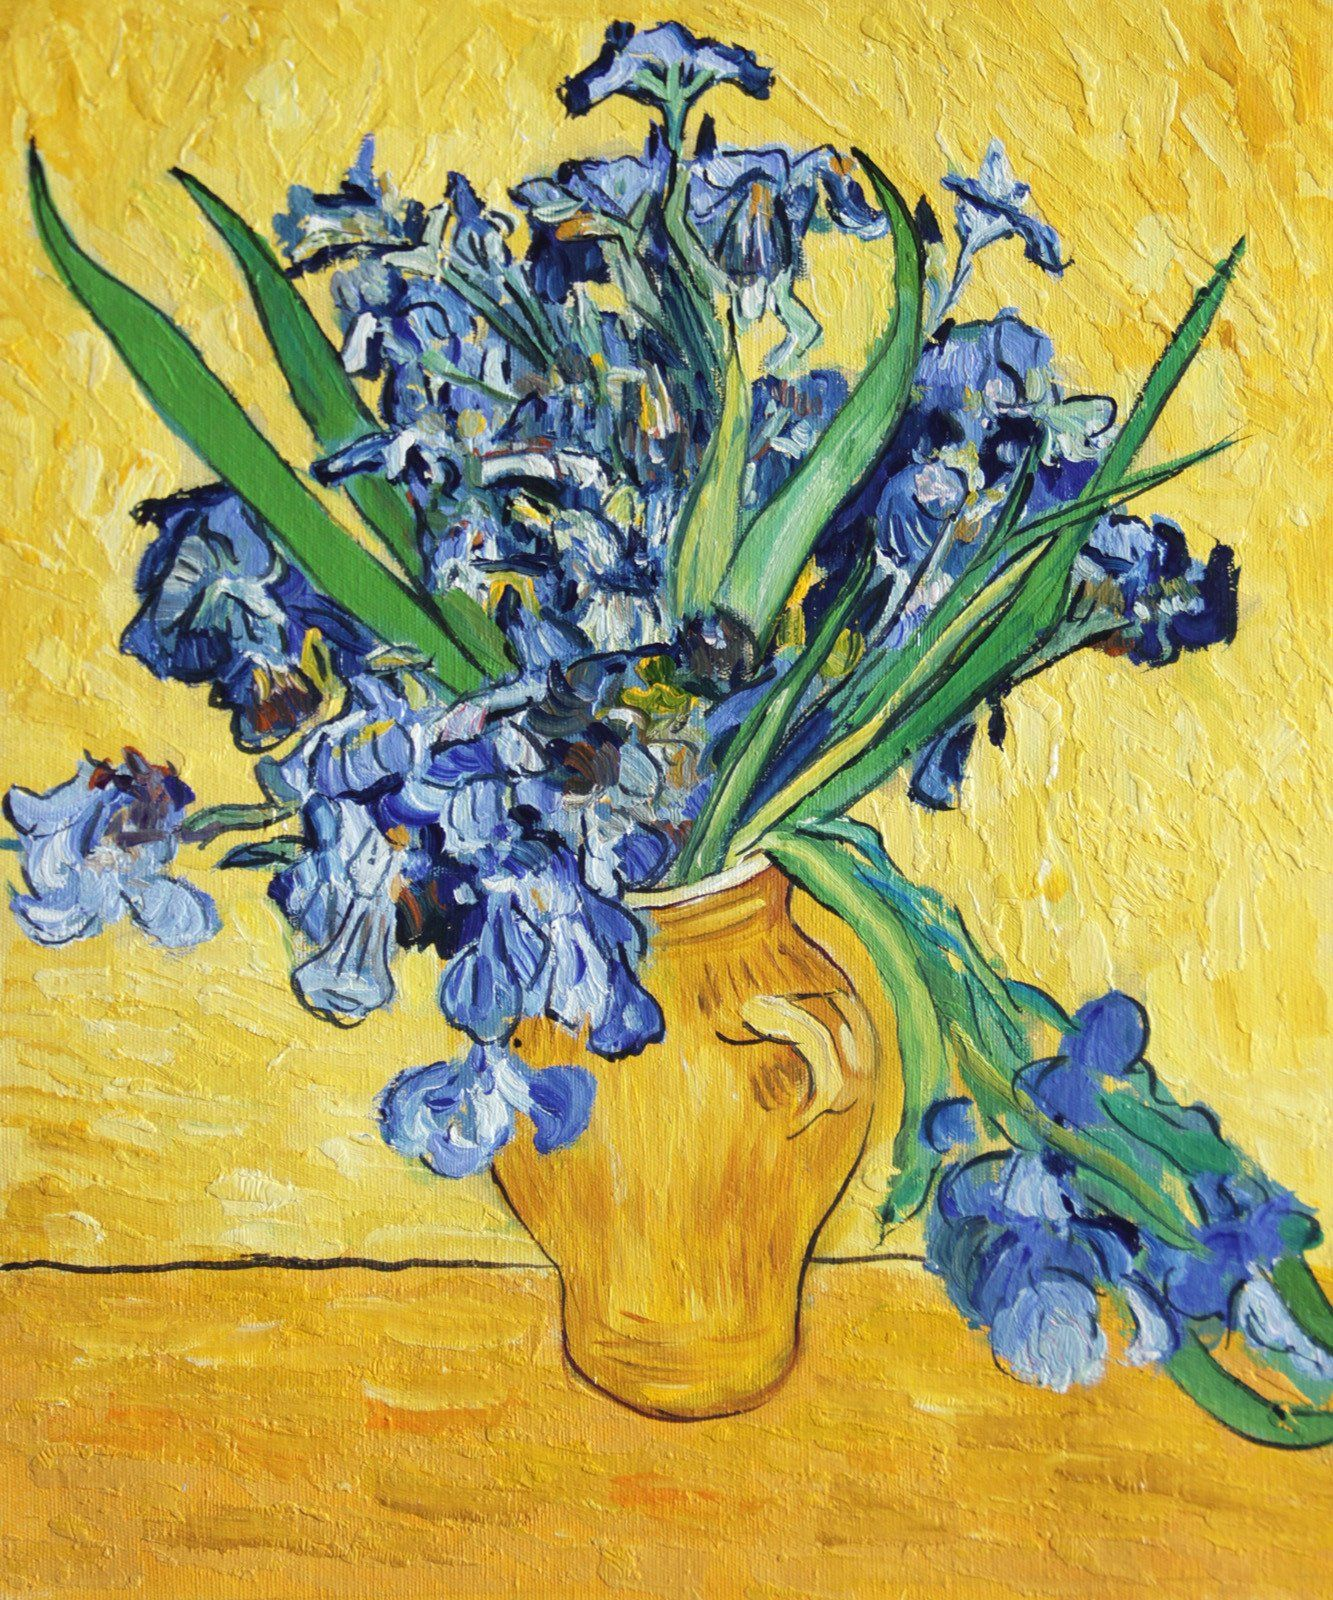 Vg14 still life with irises vincent van gogh repro oil painting on vg14 still life with irises vincent van gogh repro oil painting on canvas 20x24 reviewsmspy